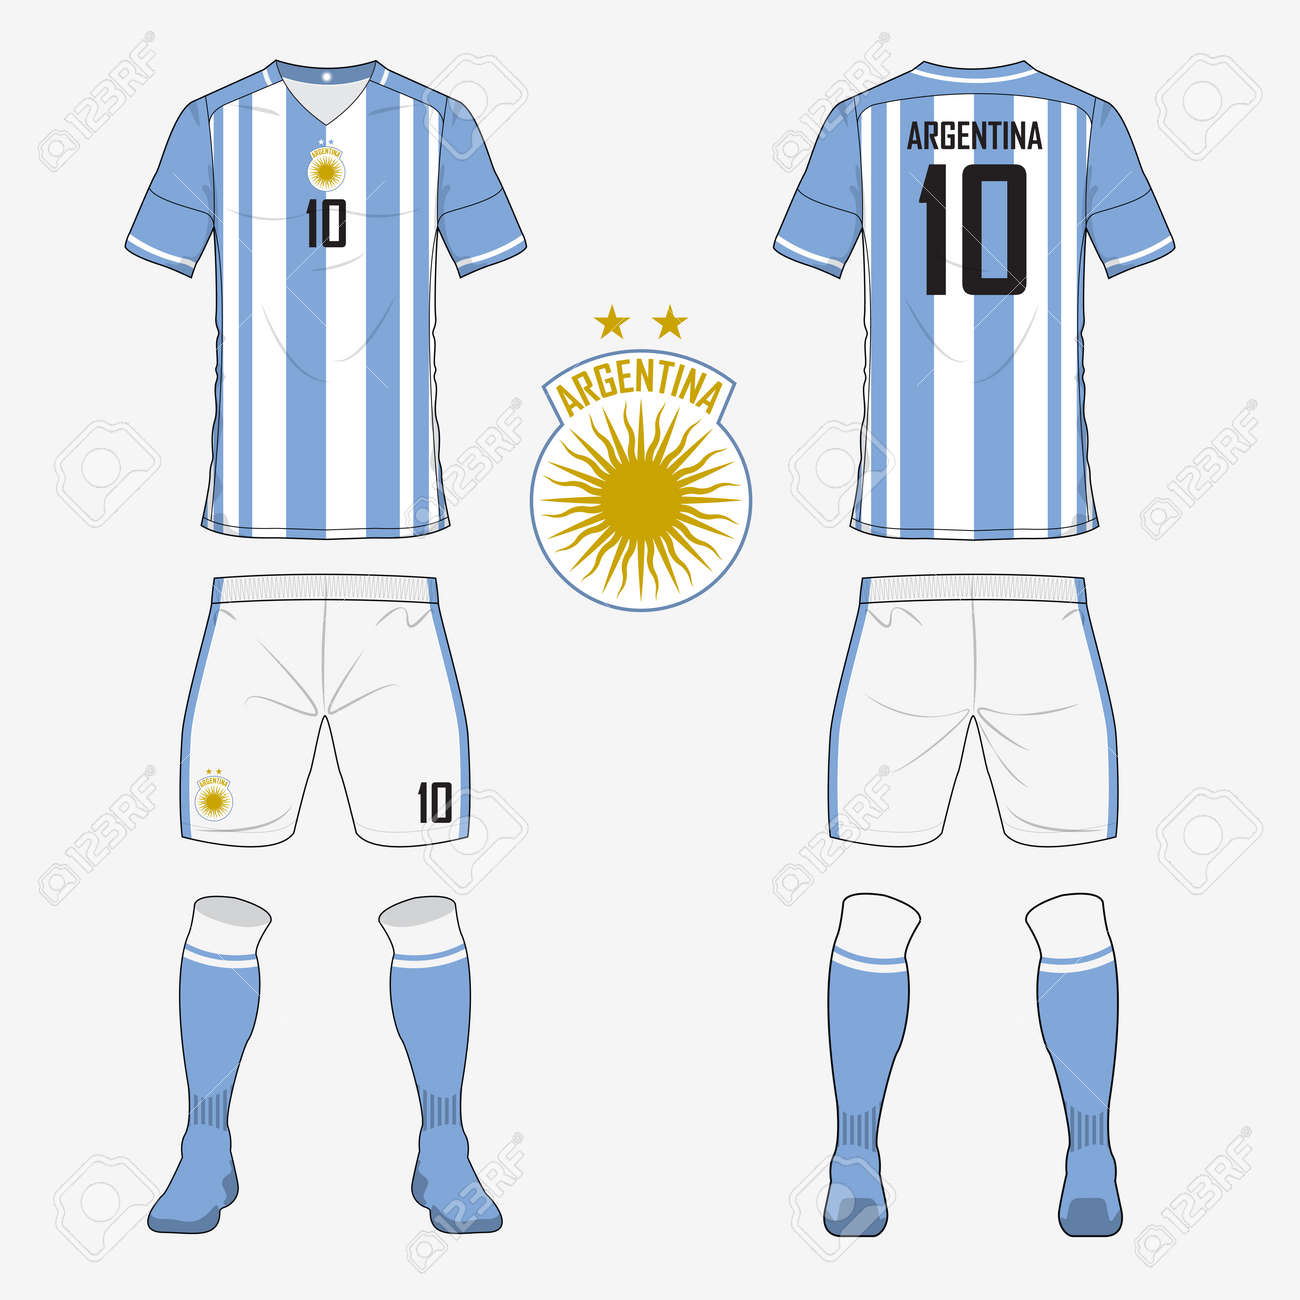 1195e54cd Set of soccer jersey or football kit template for Argentina national  football team. Front and